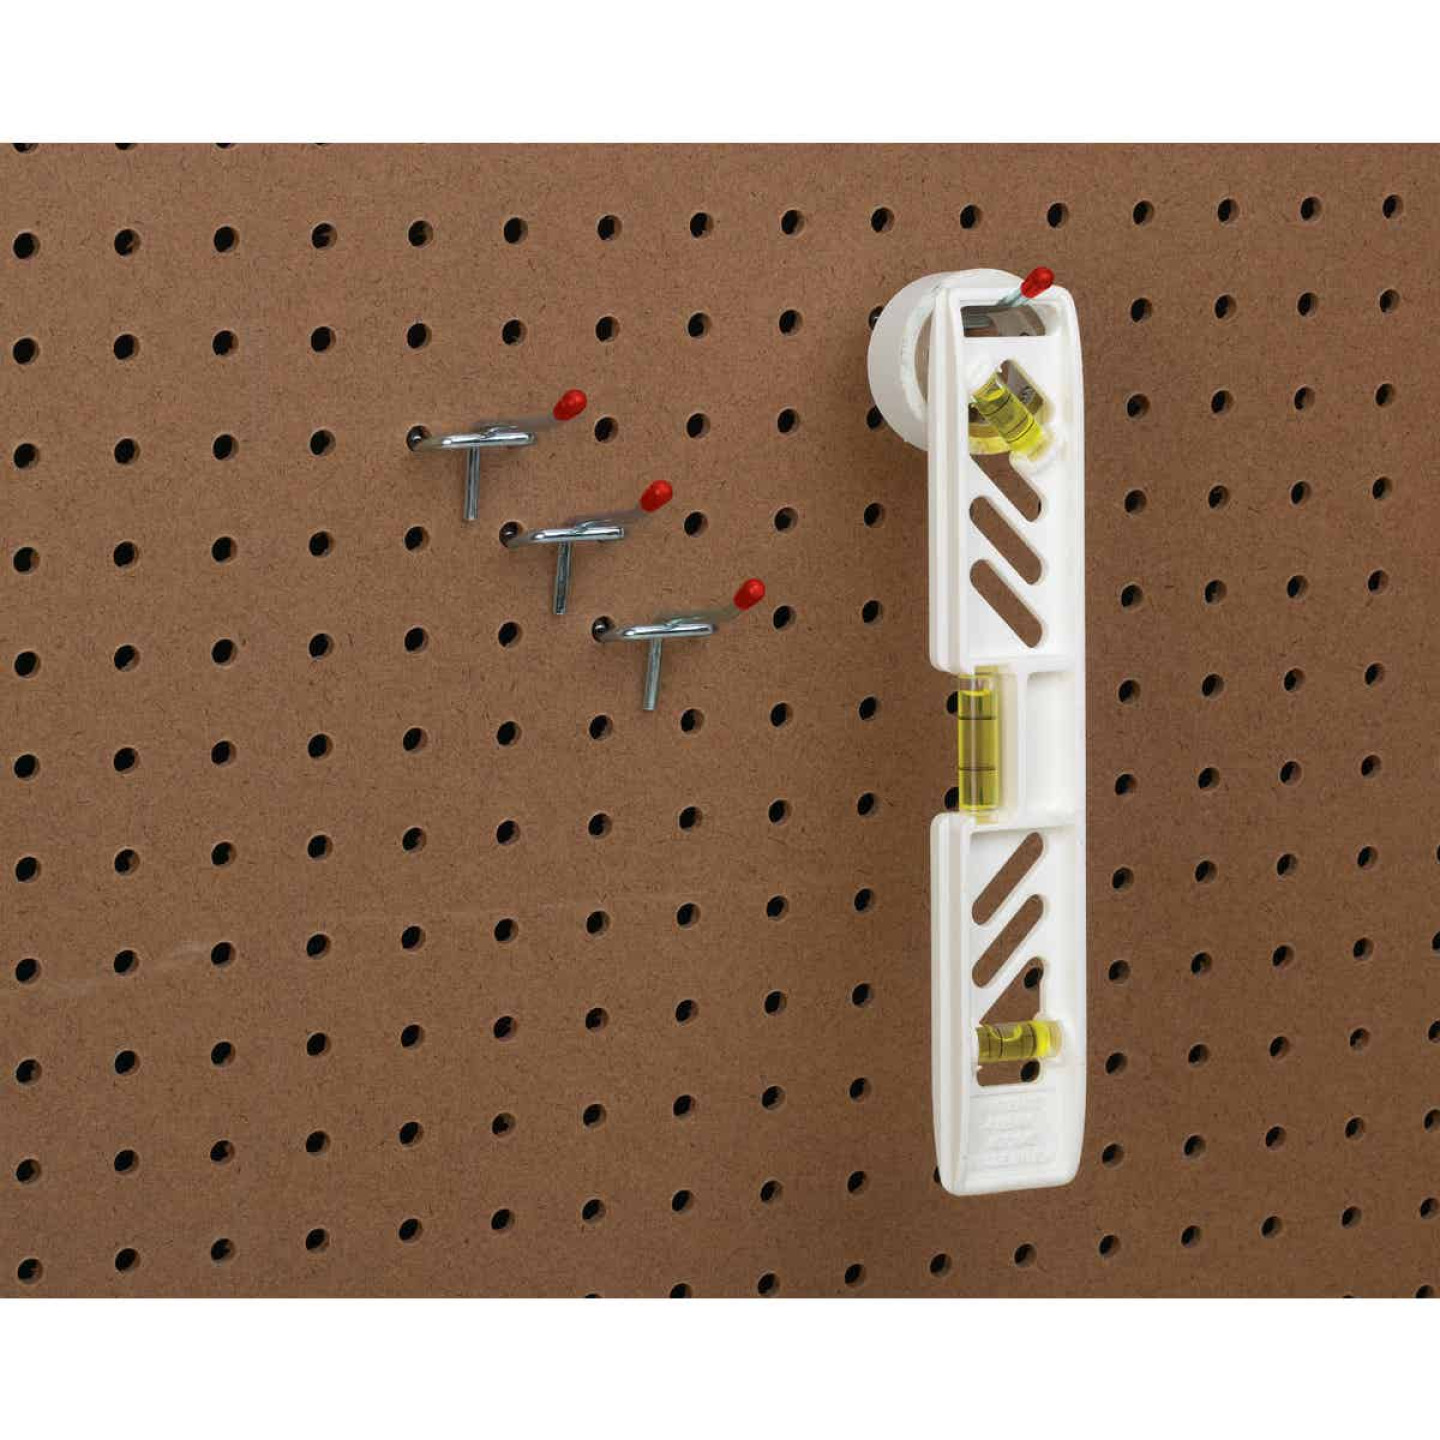 2 In. Light Duty Safety Tip Straight Pegboard Hook (4-Count) Image 2